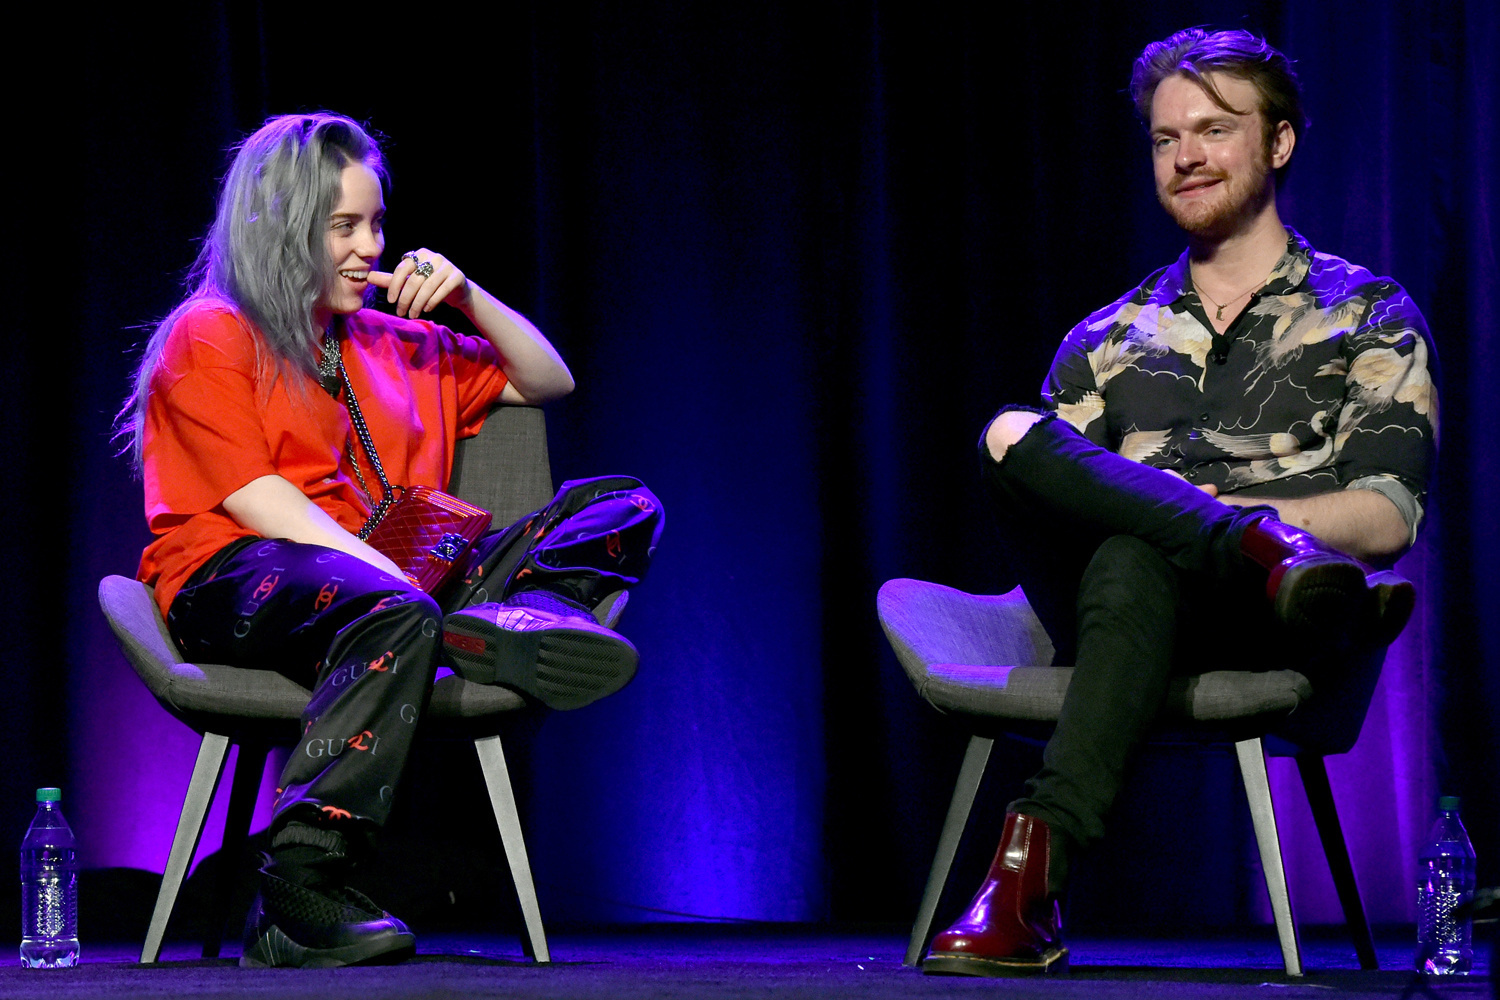 Billie Eilish et son frère Finneas O'Connell, Getty Images